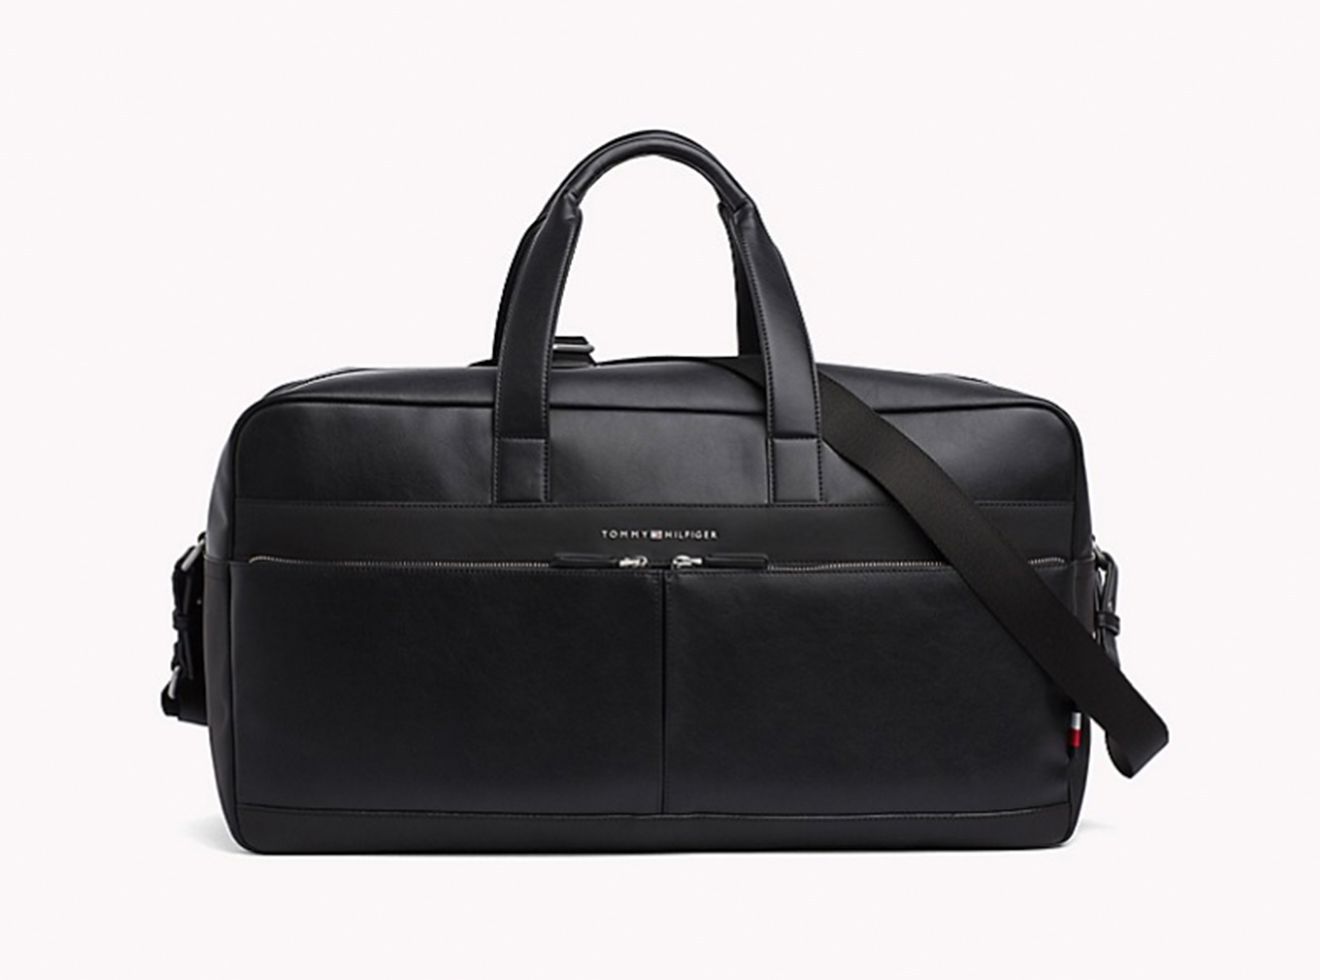 Tommy Hilfiger City Weekender Bag